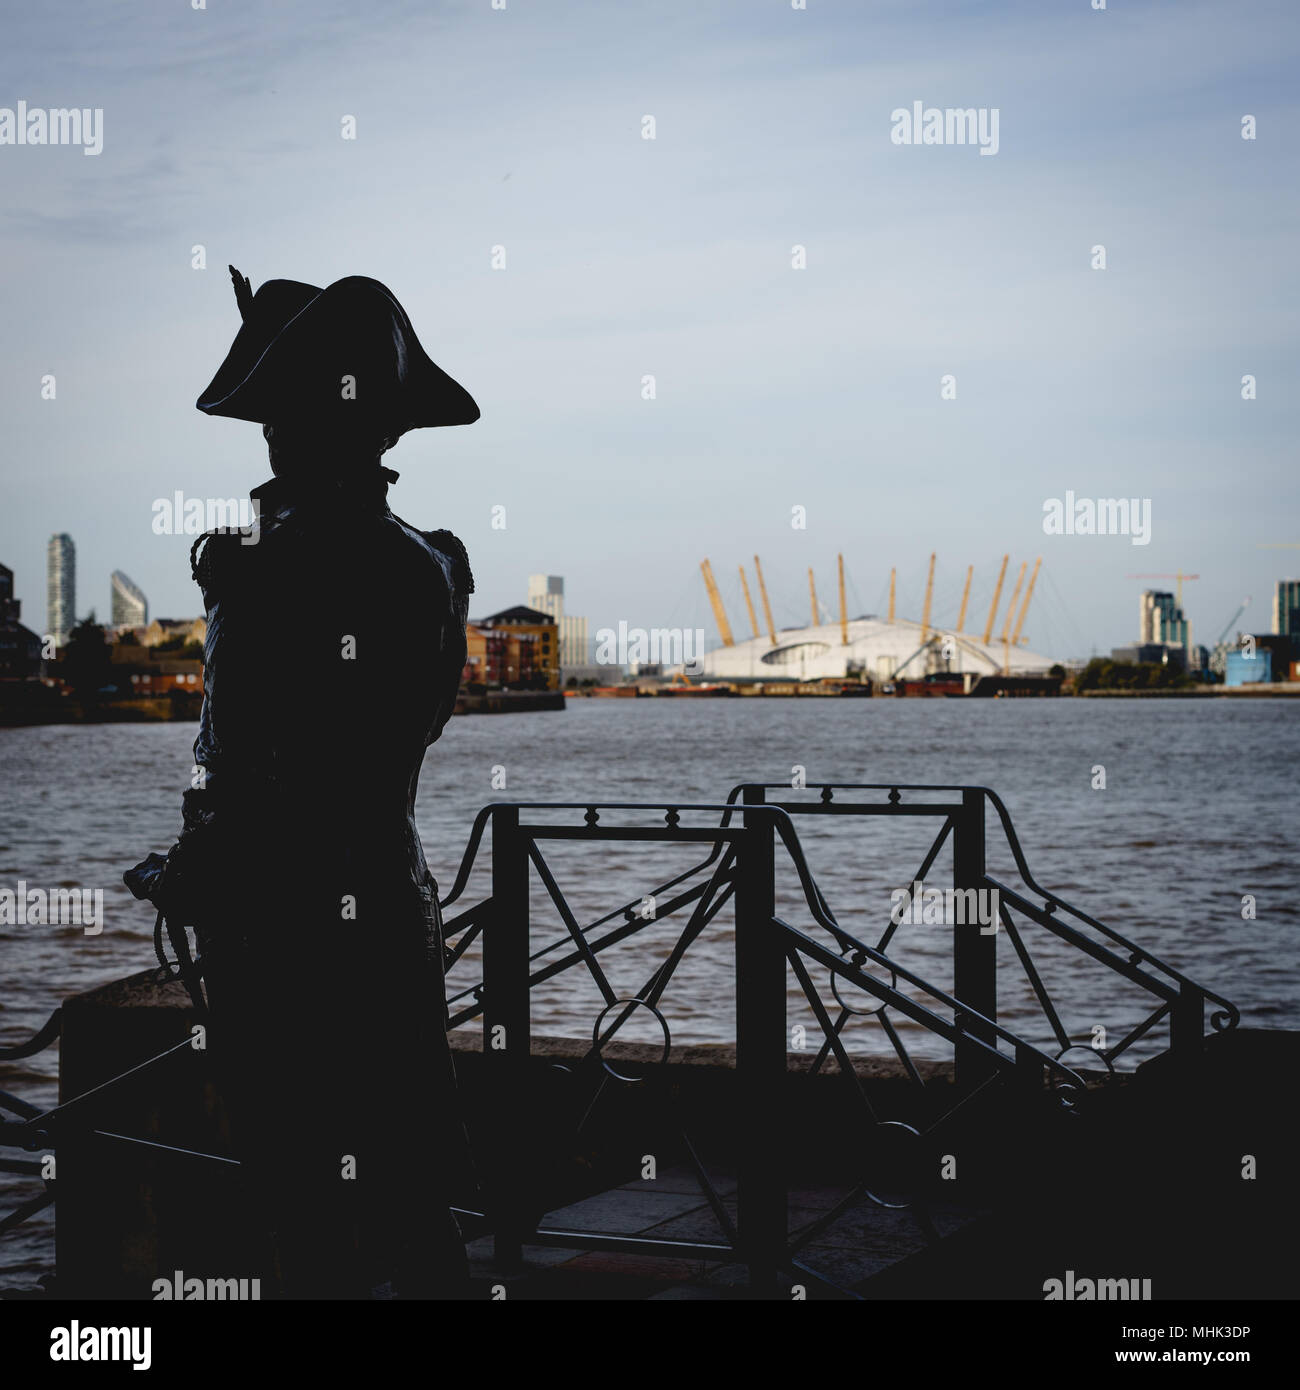 London (UK), September 2017. Statue of Horatio Nelson on the Thames Path in Greenwich. Square format. Stock Photo